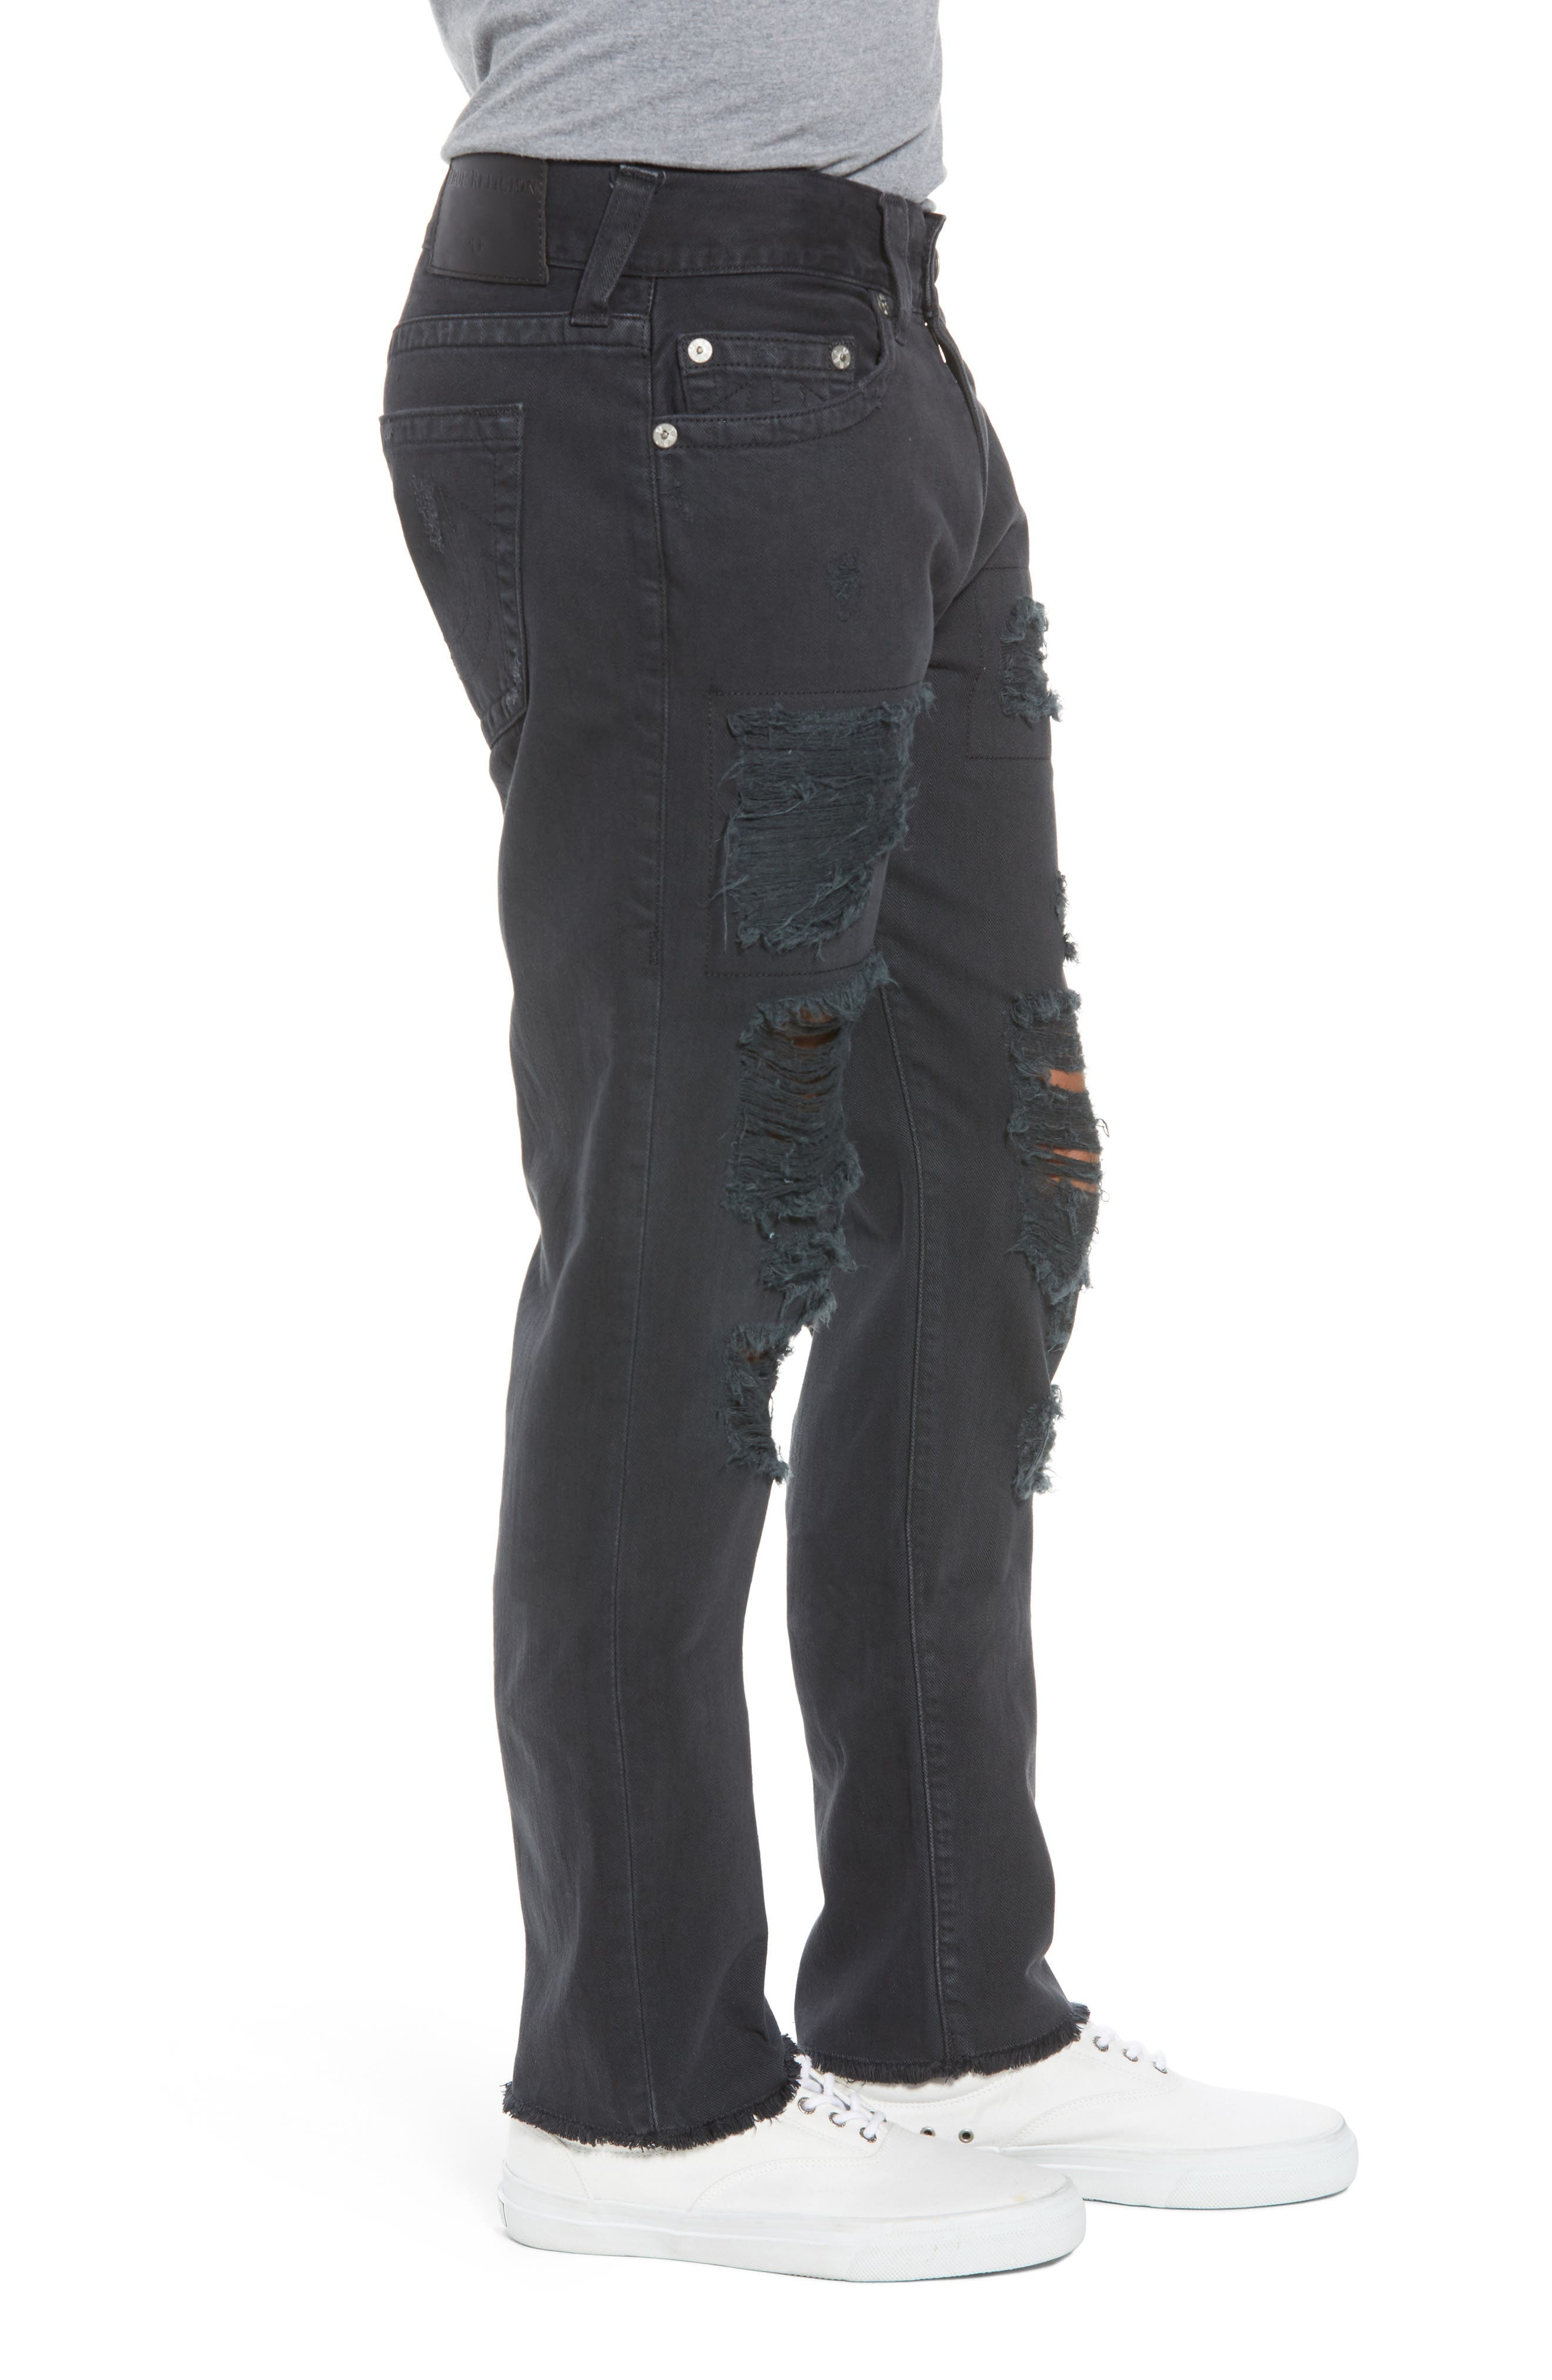 Rocco Skinny Fit Jeans,                             Alternate thumbnail 3, color,                             Black Volcanic Ash